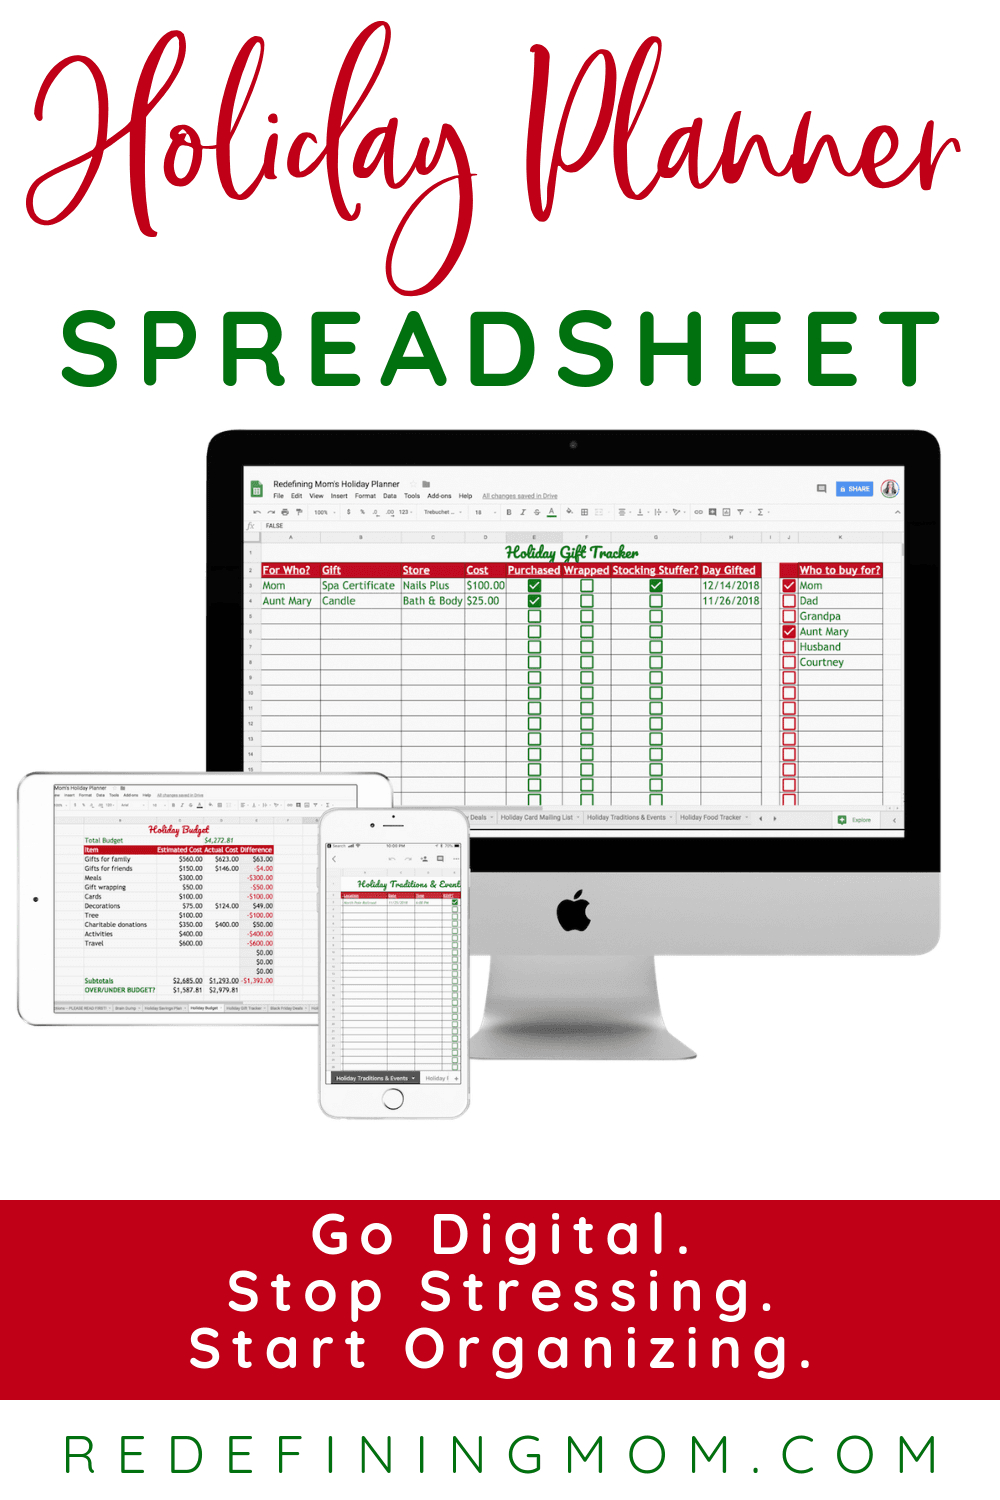 Holiday Planning Spreadsheet For The Ultimate Holiday Planner Spreadsheet